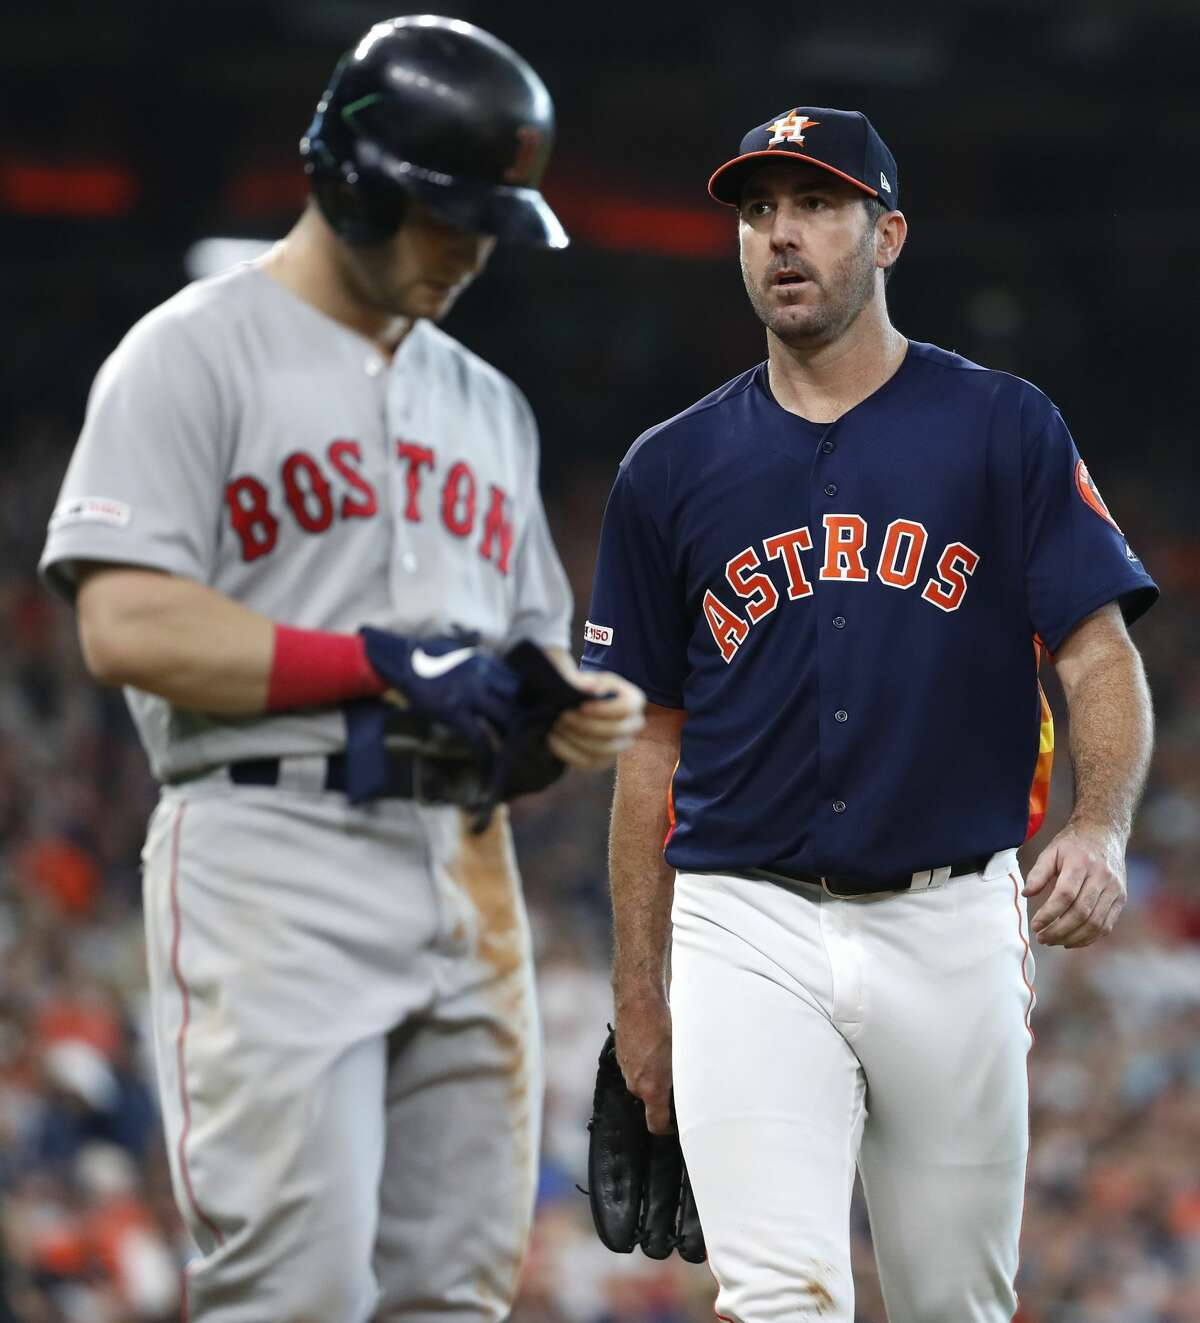 Houston Astros starting pitcher Justin Verlander walks past Boston Red Sox left fielder Andrew Benintendi at the end of the seventh inning of a major league baseball game at Minute Maid Park on Sunday, May 26, 2019, in Houston.